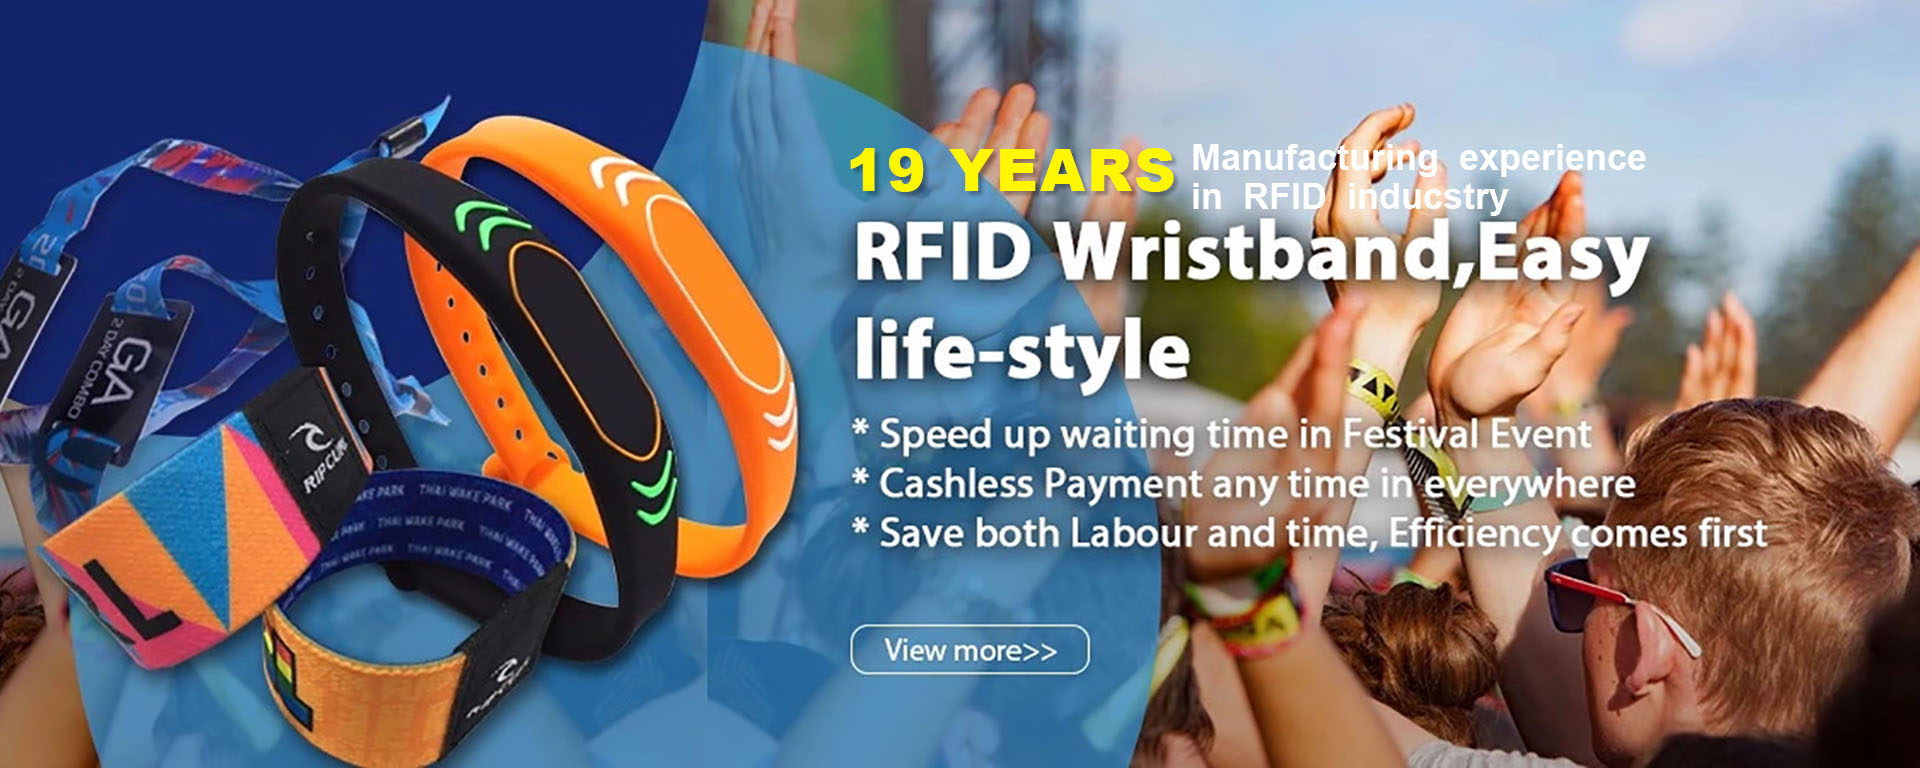 RFID Wriistbands